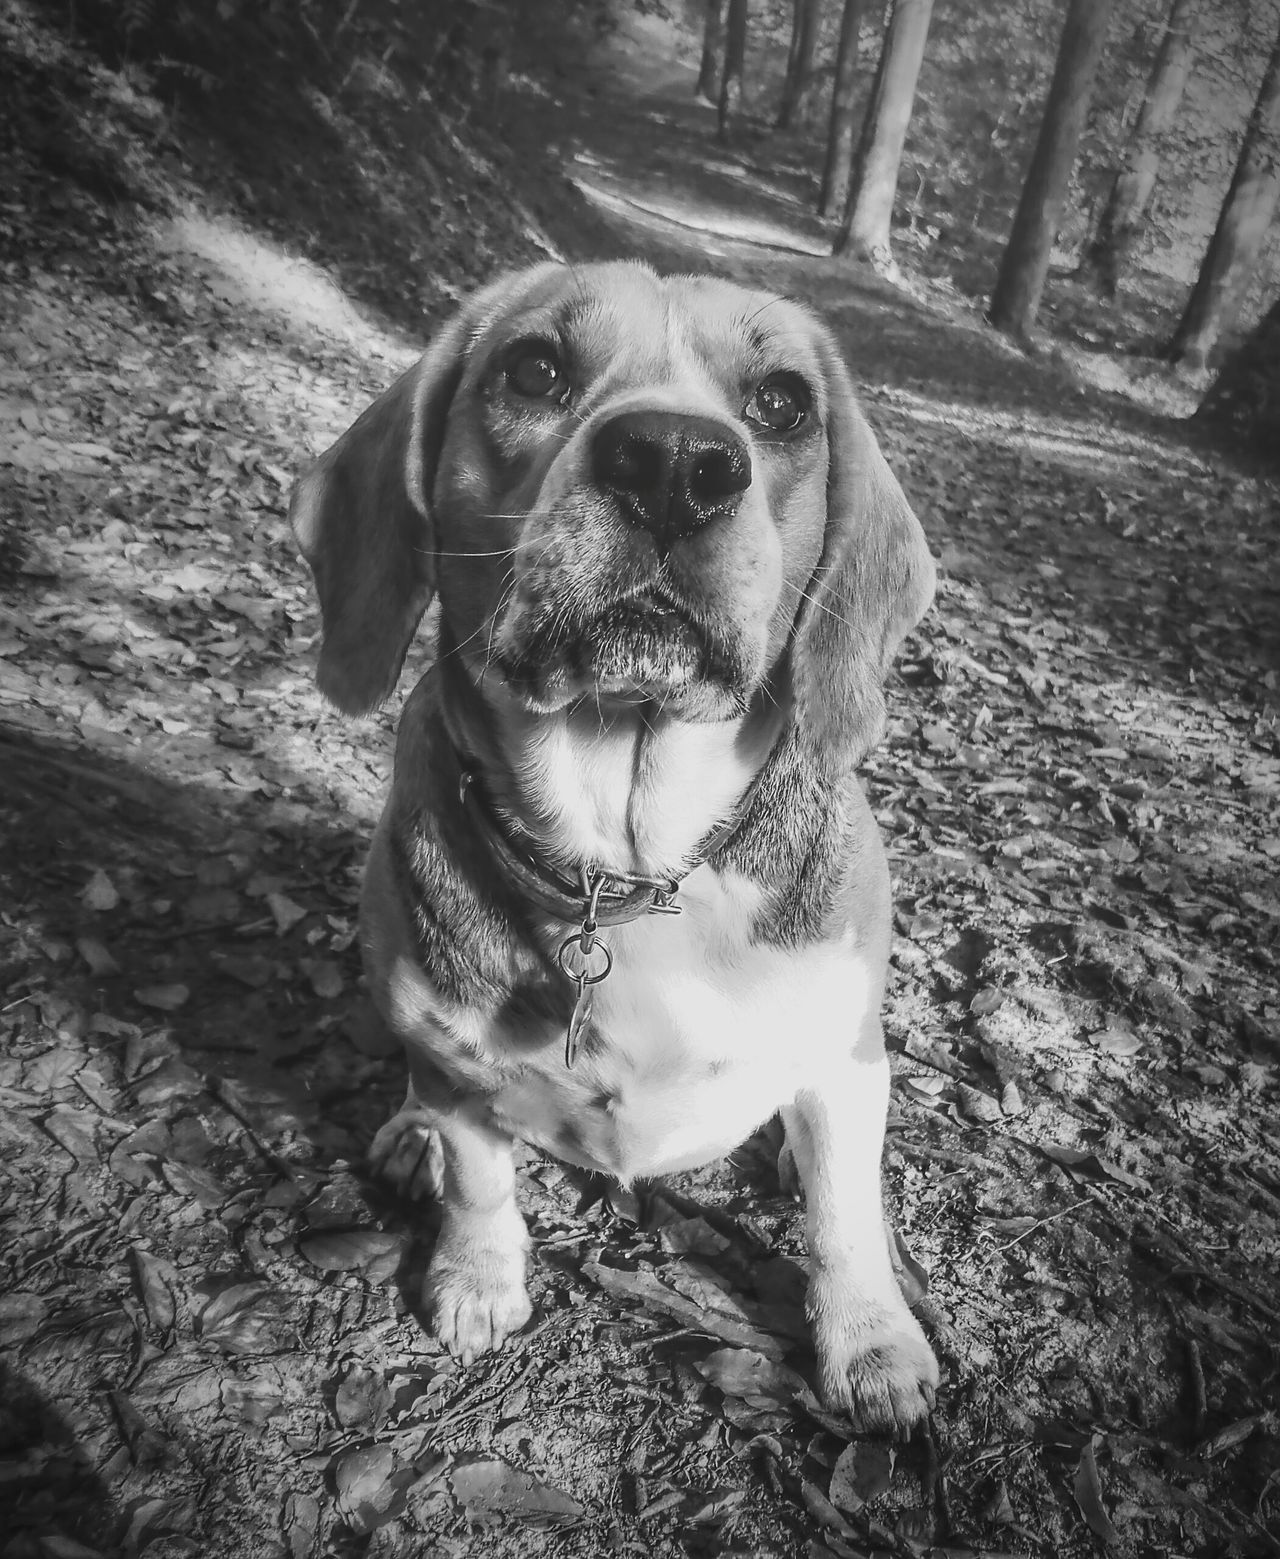 Dog Pets One Animal Domestic Animals Animal Themes Portrait Mammal Day Sitting No People Outdoors Looking At Camera Nature Forest Beagle Beagle Dog Beagles  Beagle Love Beagleworld Dog Dog Looking Beagles Of Eyeem Bw Blackandwhite Photography Black&white